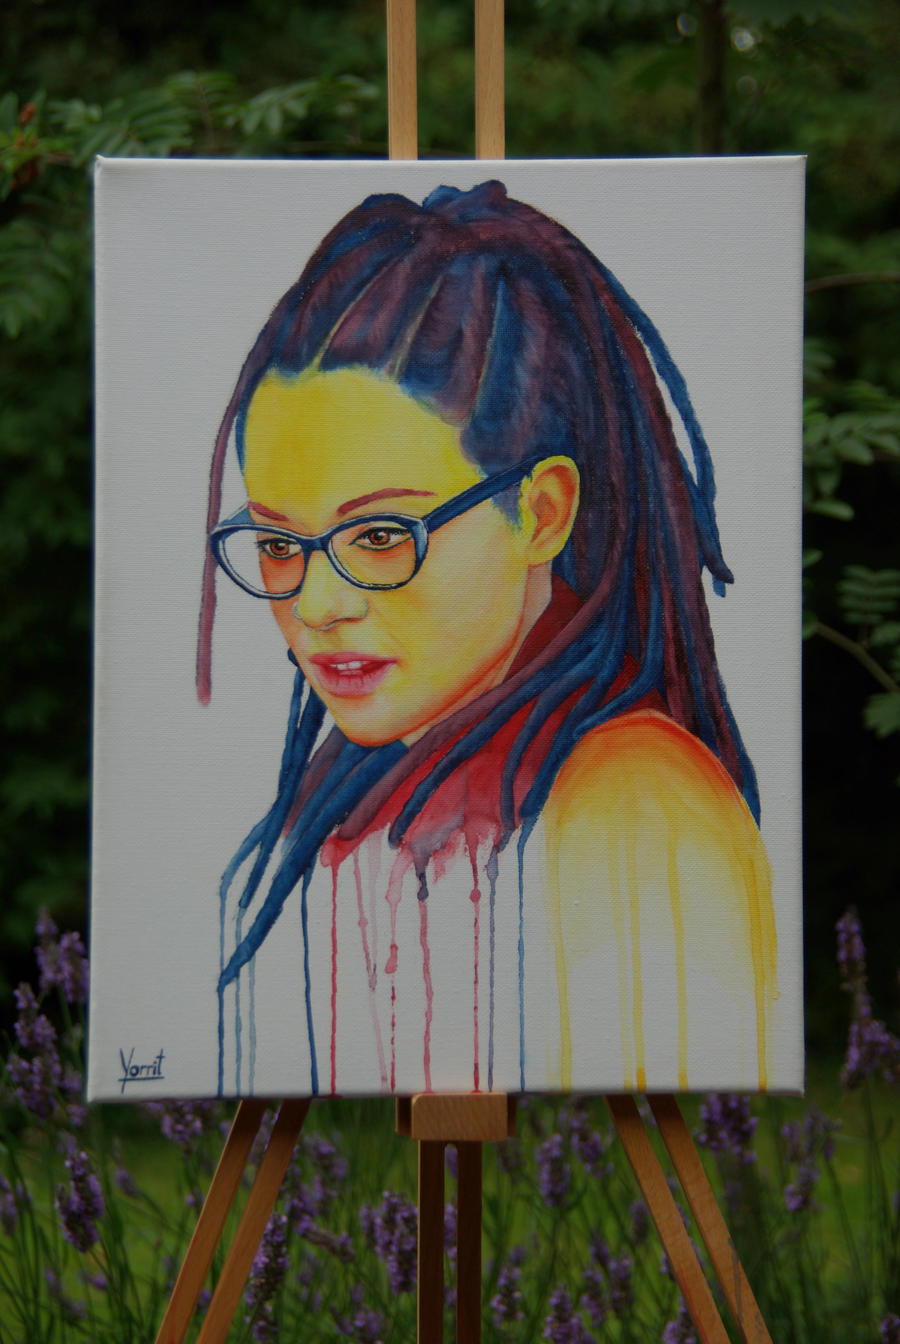 Cosima Niehaus (Orphan Black) watercolour by Yorrit